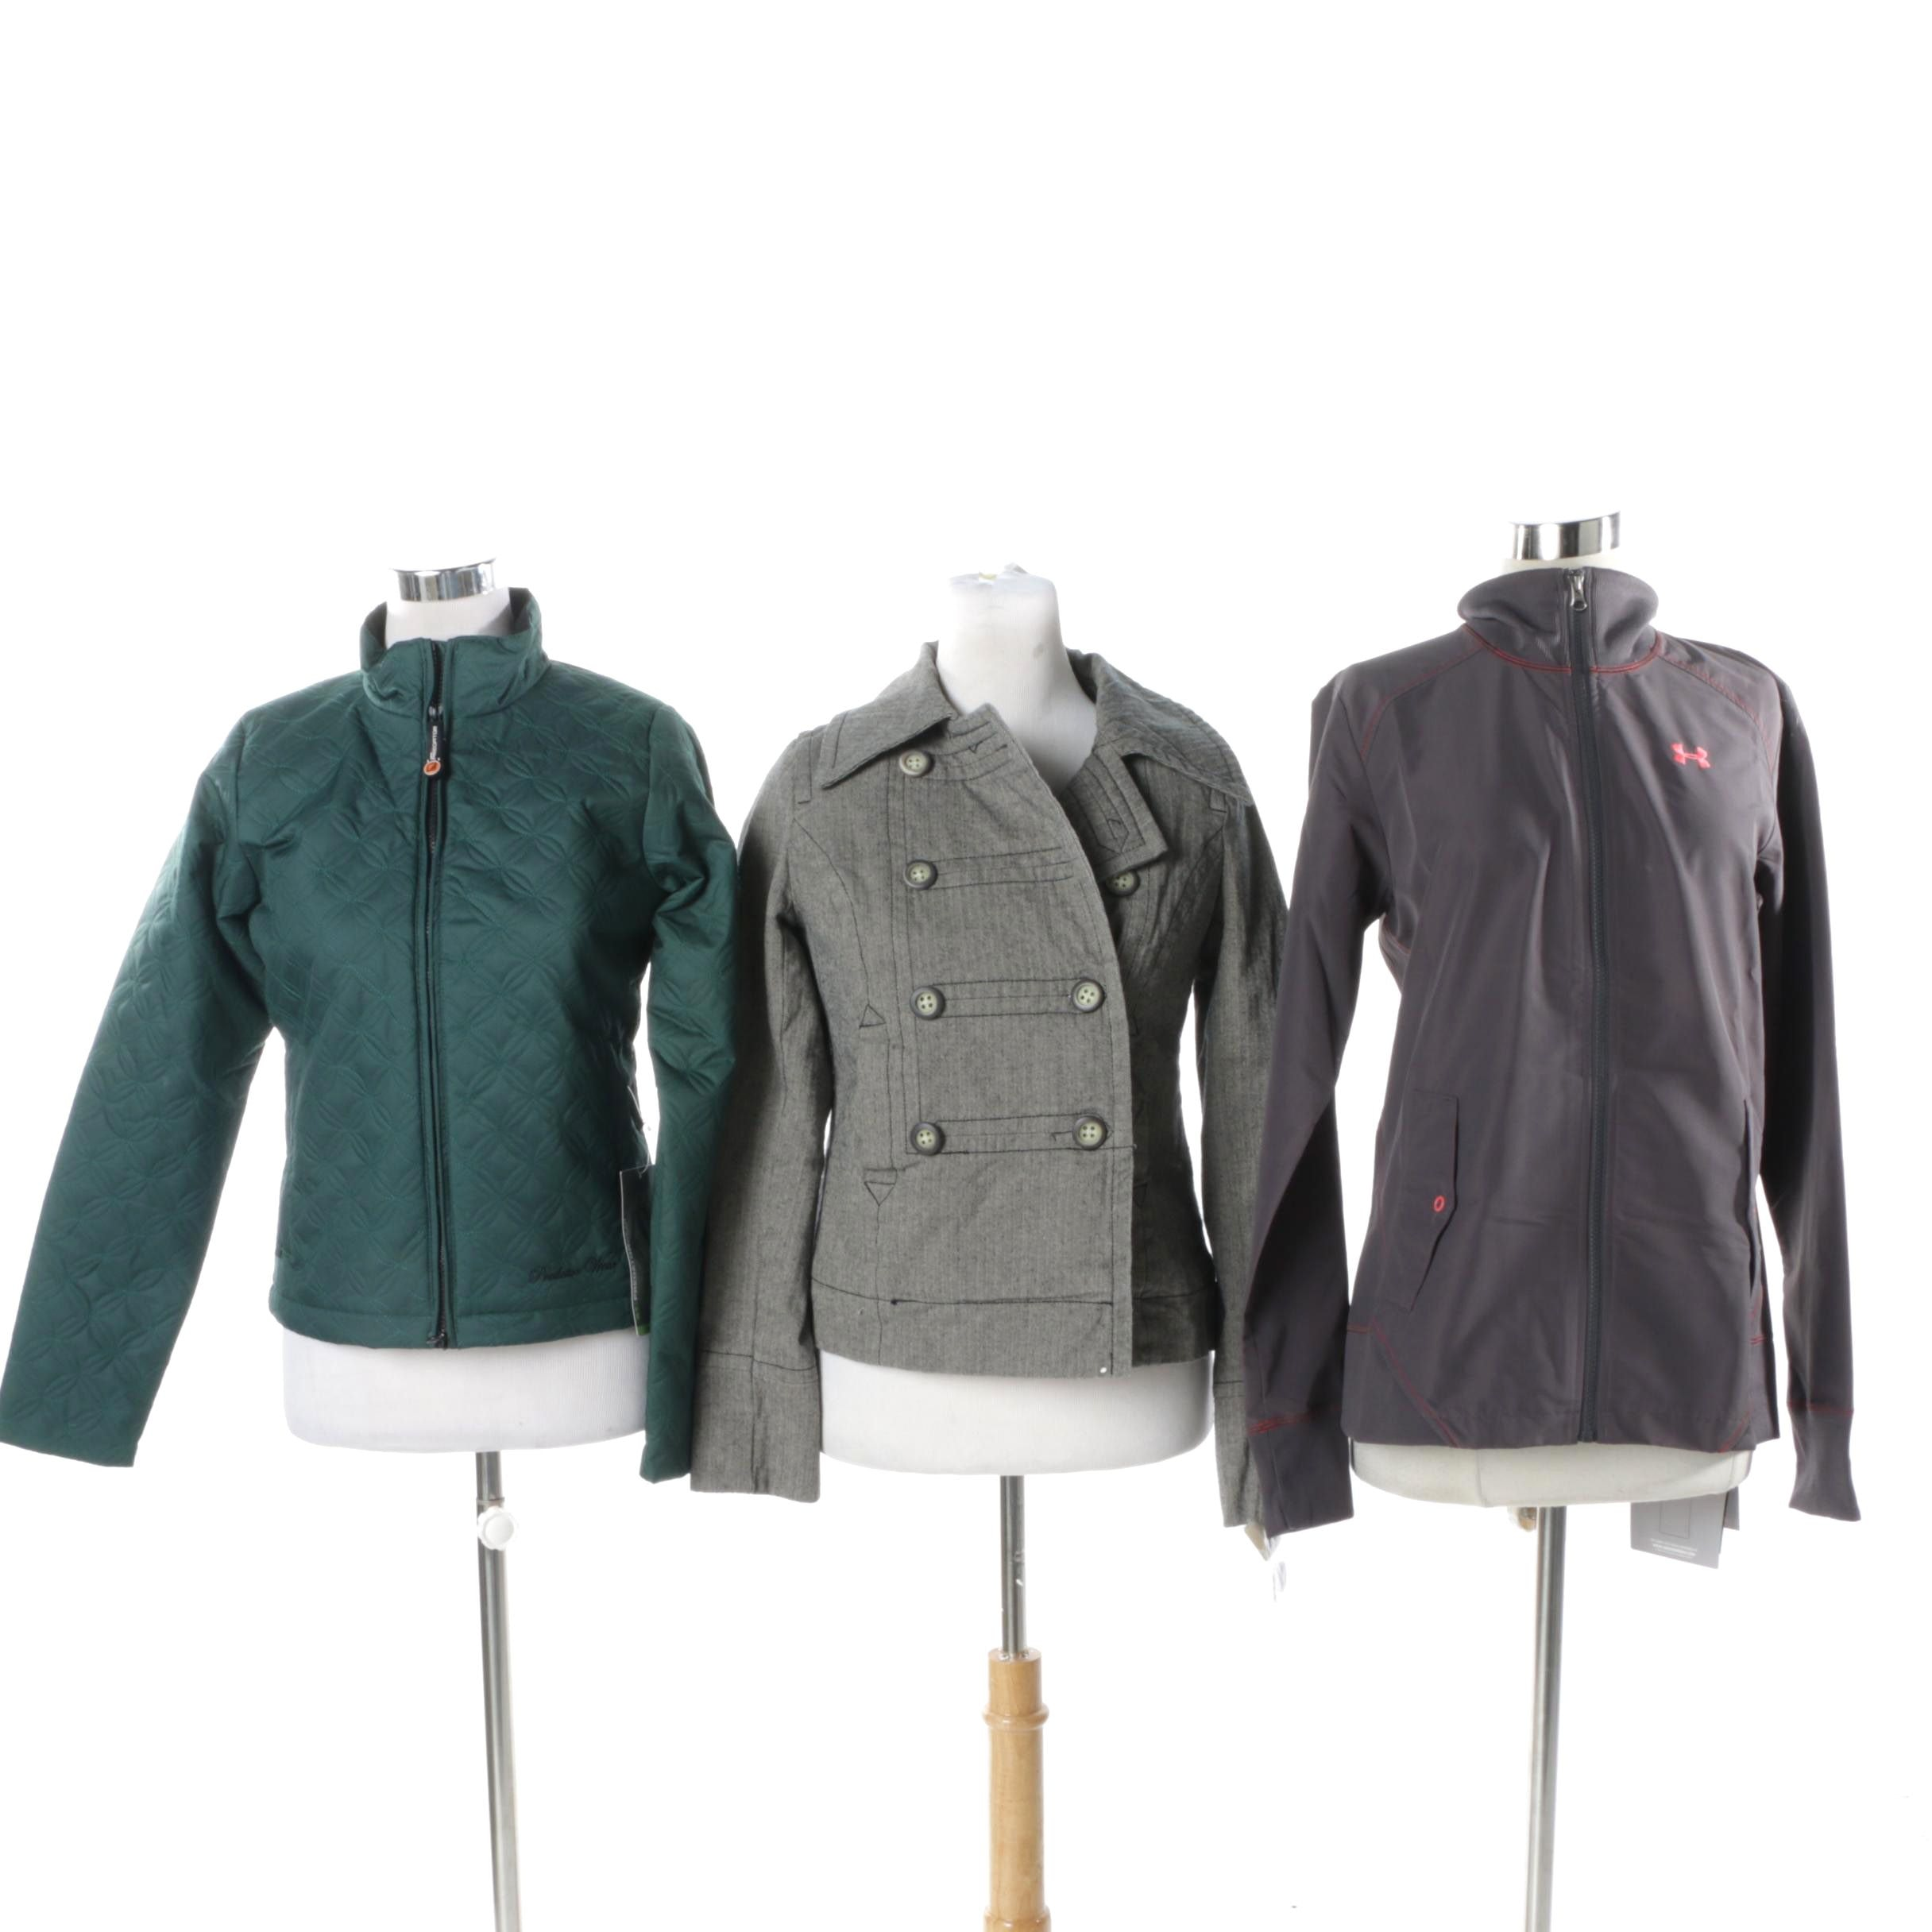 Women's Jackets Including Under Armour and Mossimo Supply Co.